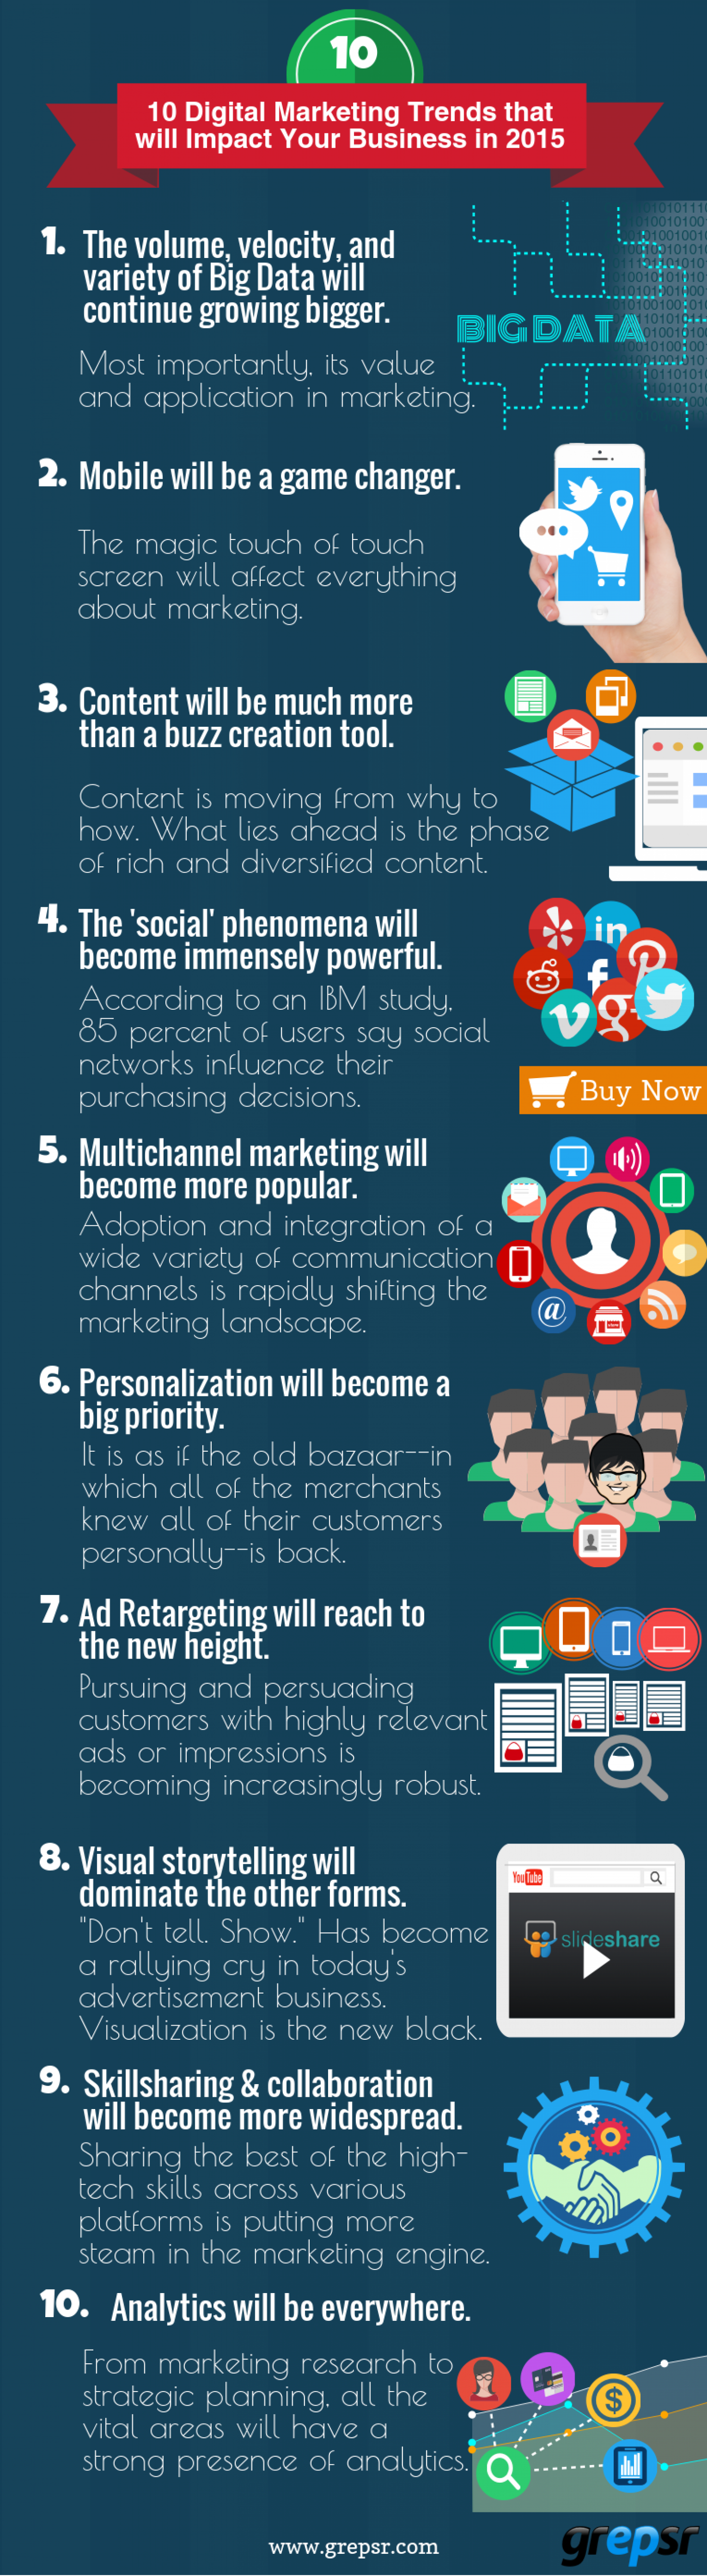 10 Digital Marketing Trends that will Impact Your Business in 2015 Infographic